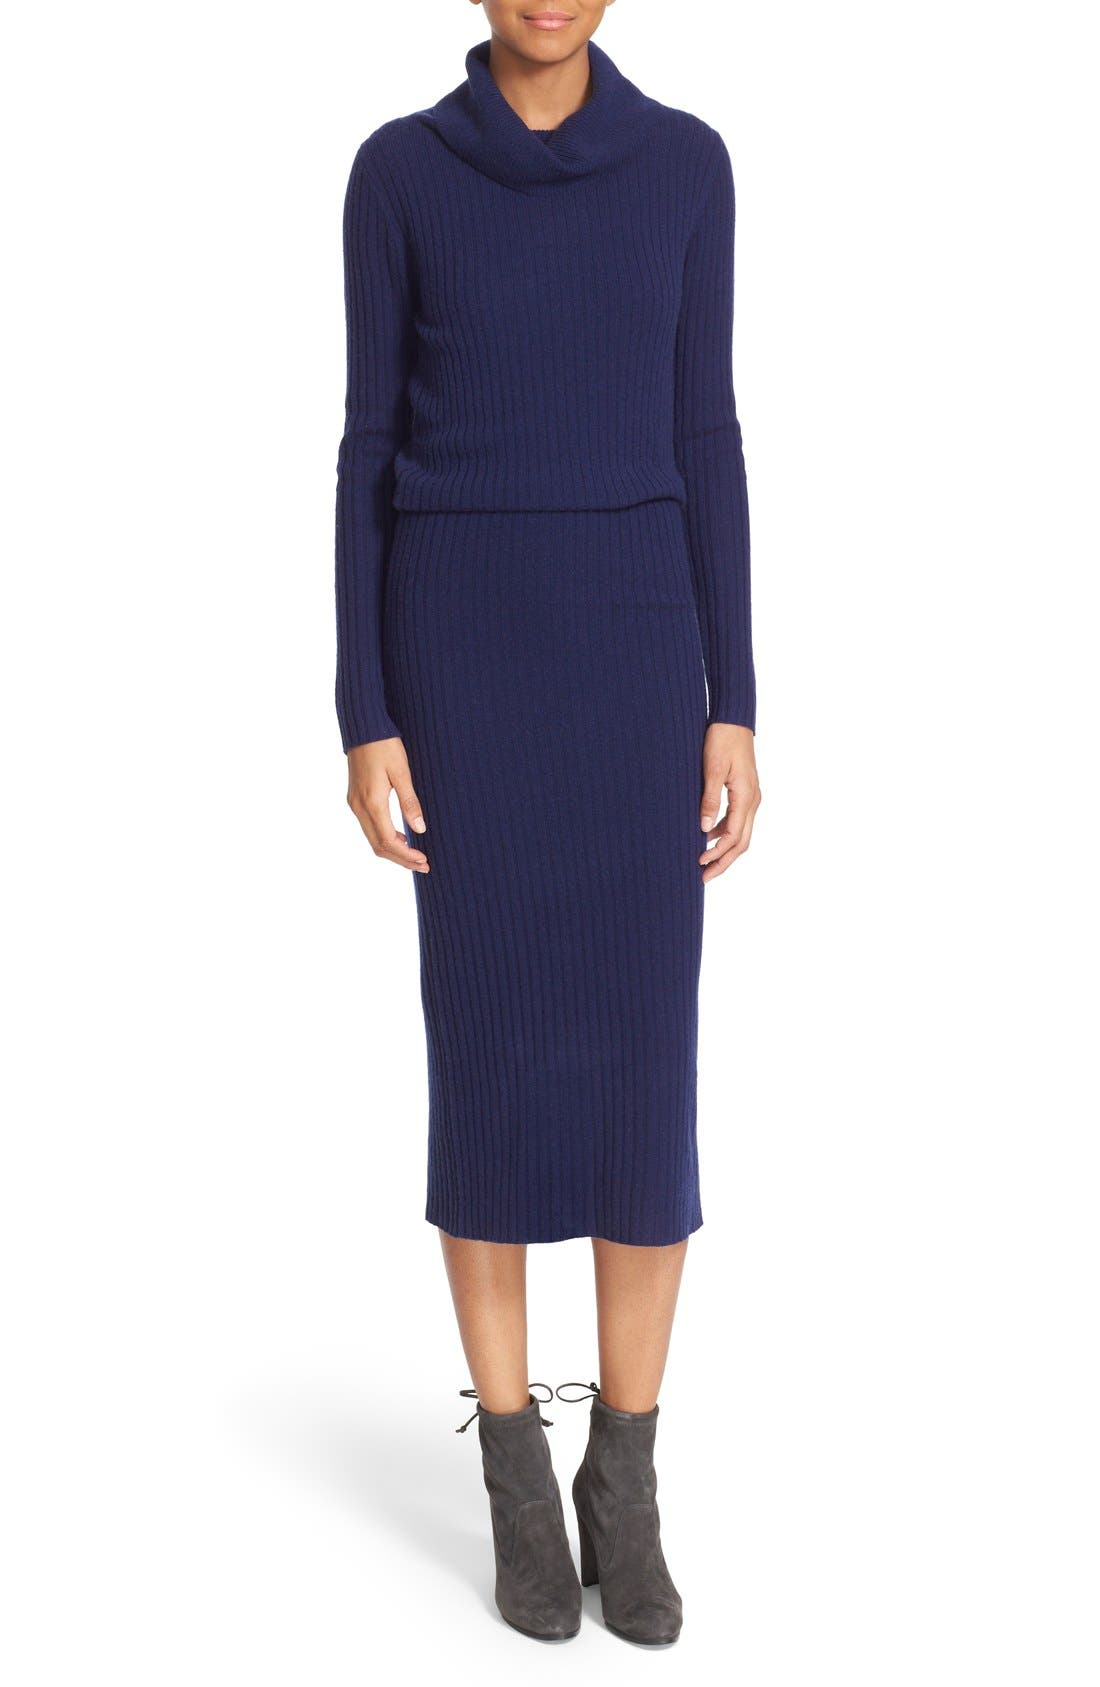 'Hailee' Cowl Neck Blouson Sweater Dress,                         Main,                         color, Navy